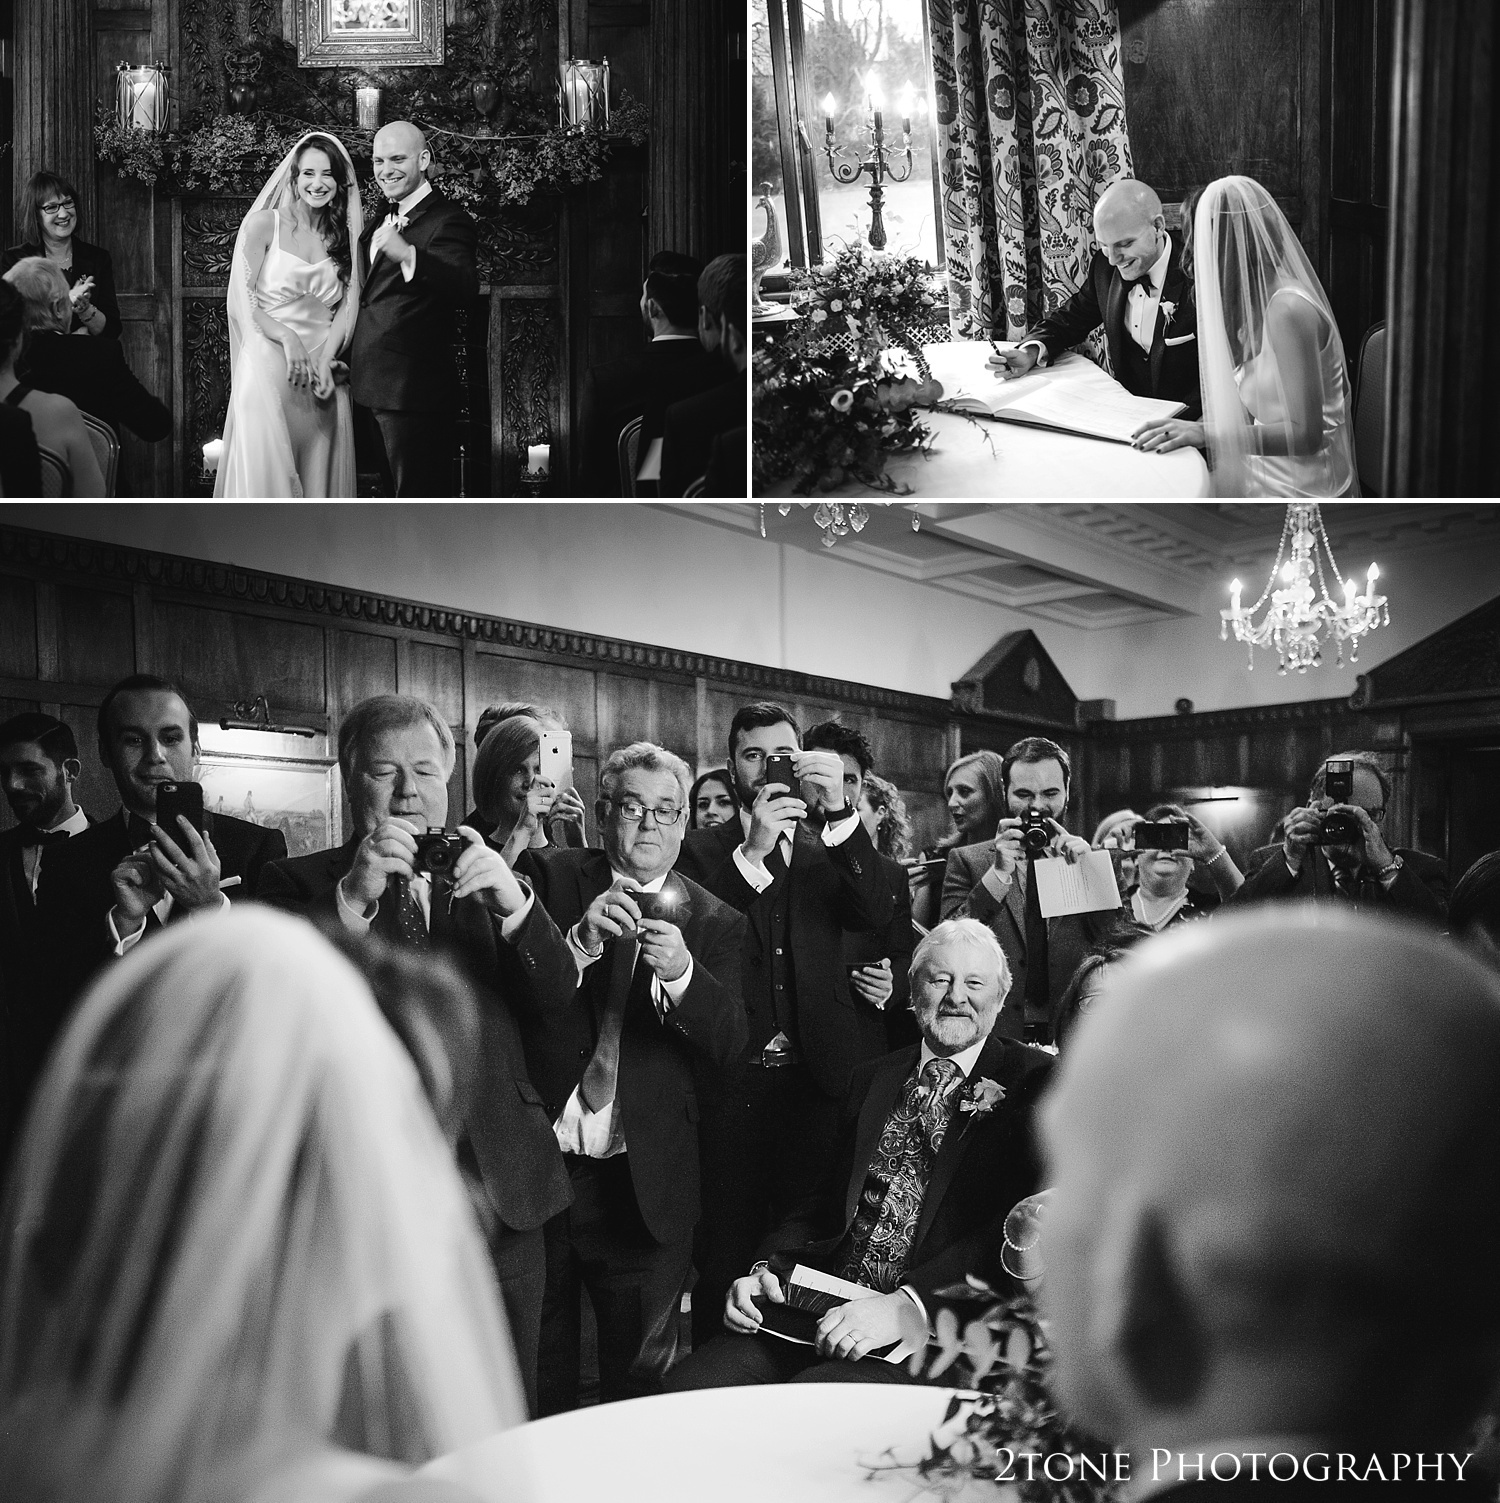 Signing the register at Ellingham Hall. Winter wedding photography by www.2tonephotography.co.uk